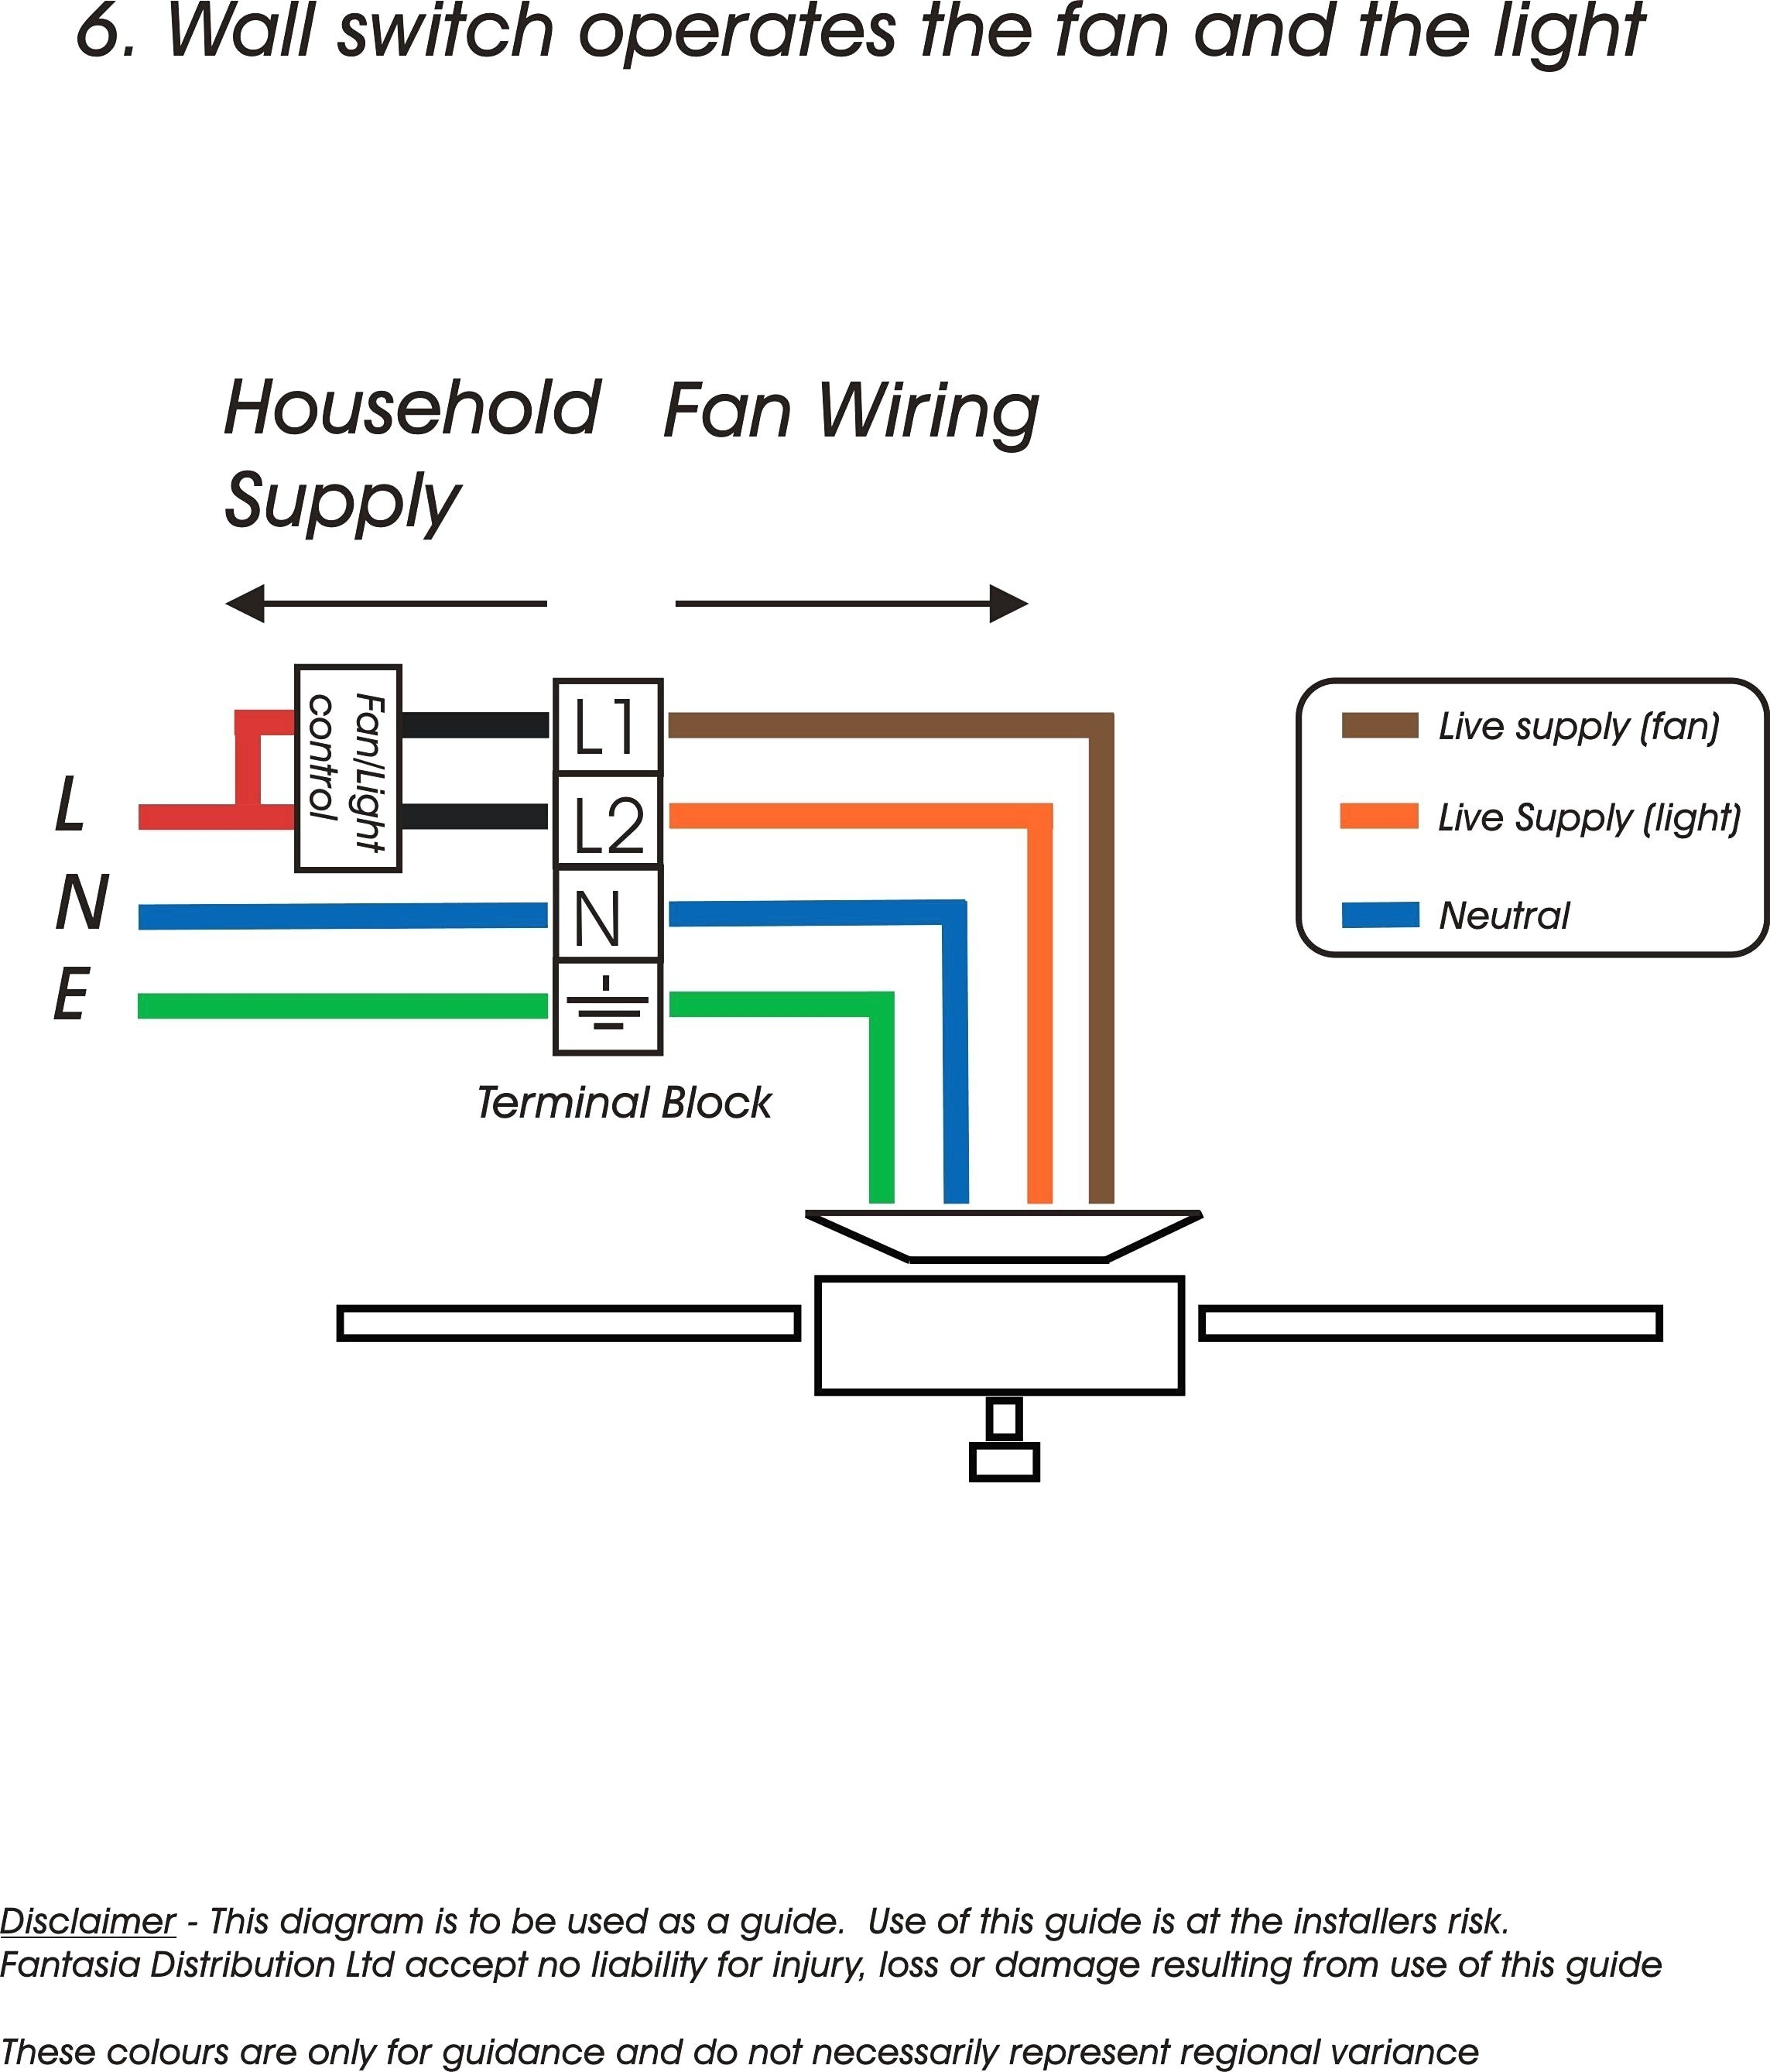 dali lighting control wiring diagram Download-Wiring Diagram Dali Lighting Inspirationa Dmx Lighting Wiring Diagram Refrence Wiring Diagram Dali Lighting 19-i